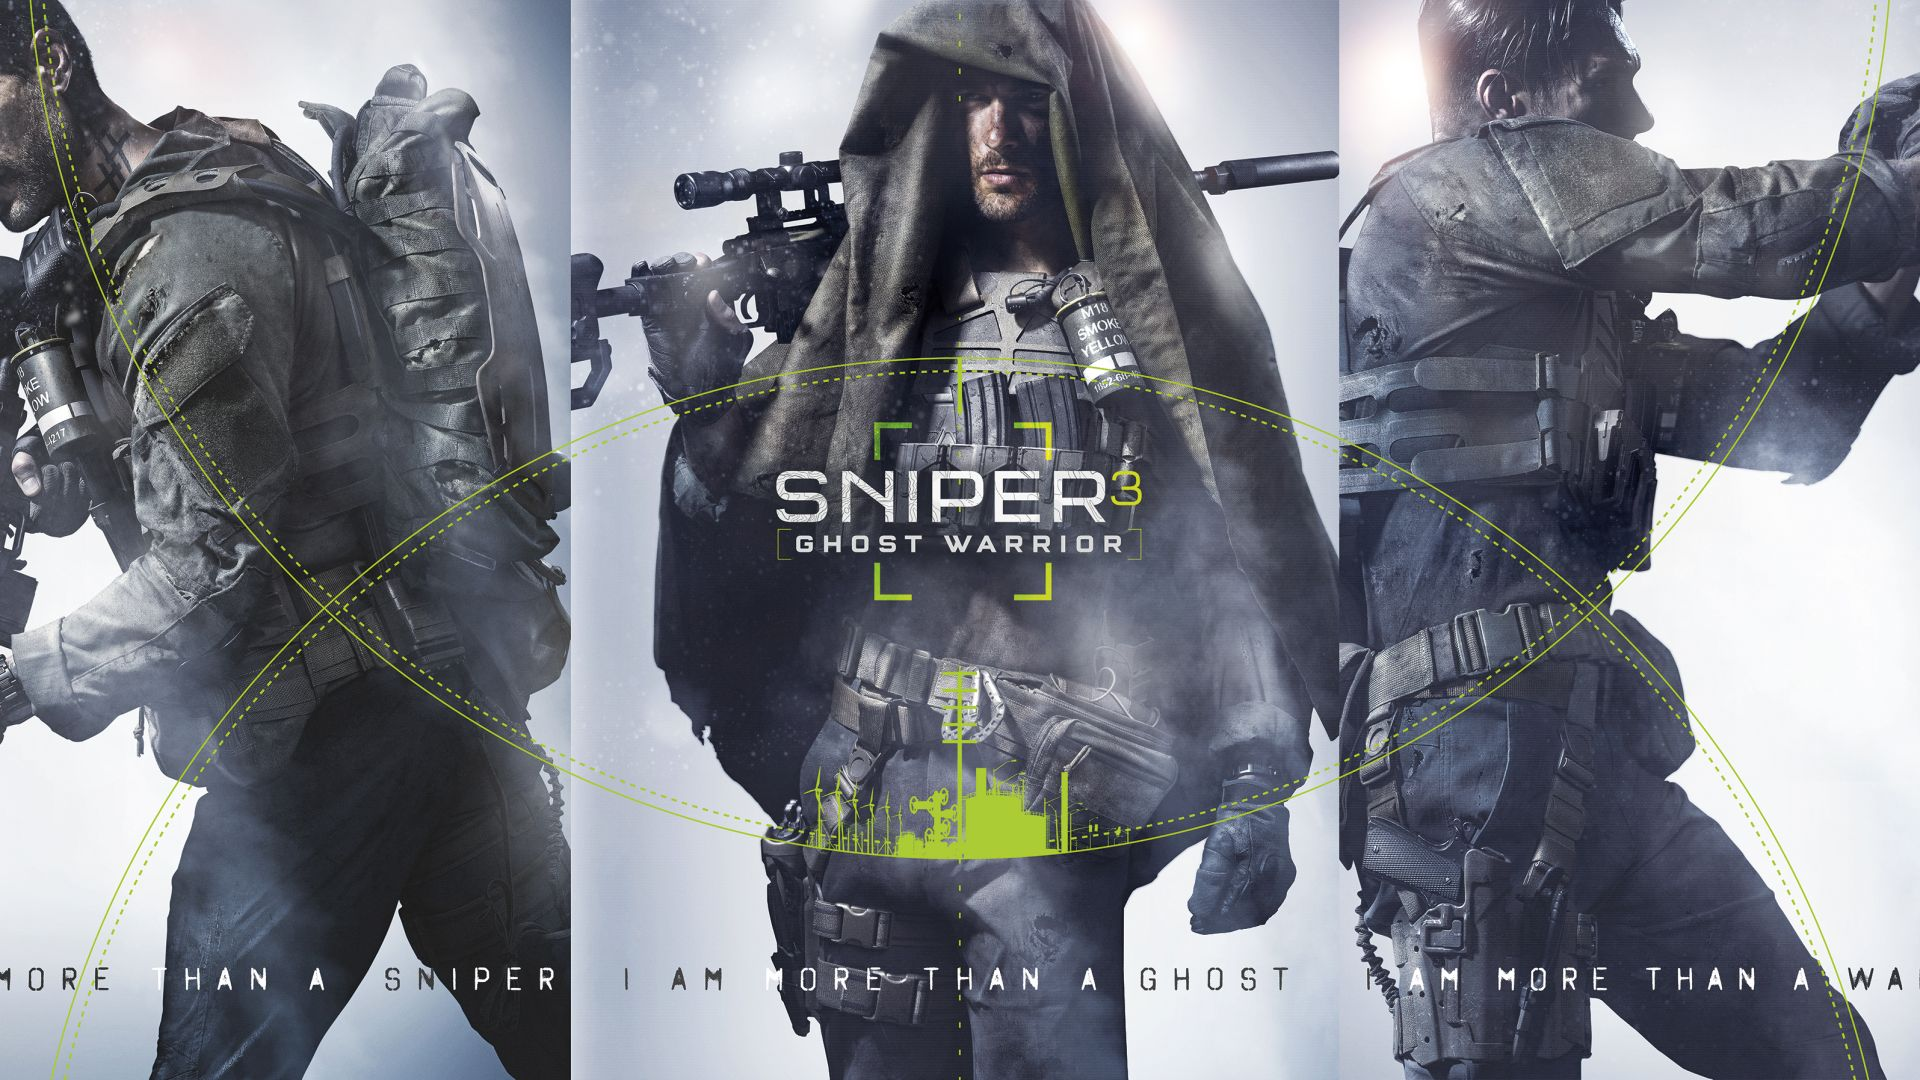 Sniper: Ghost Warrior 3, shooter, best games